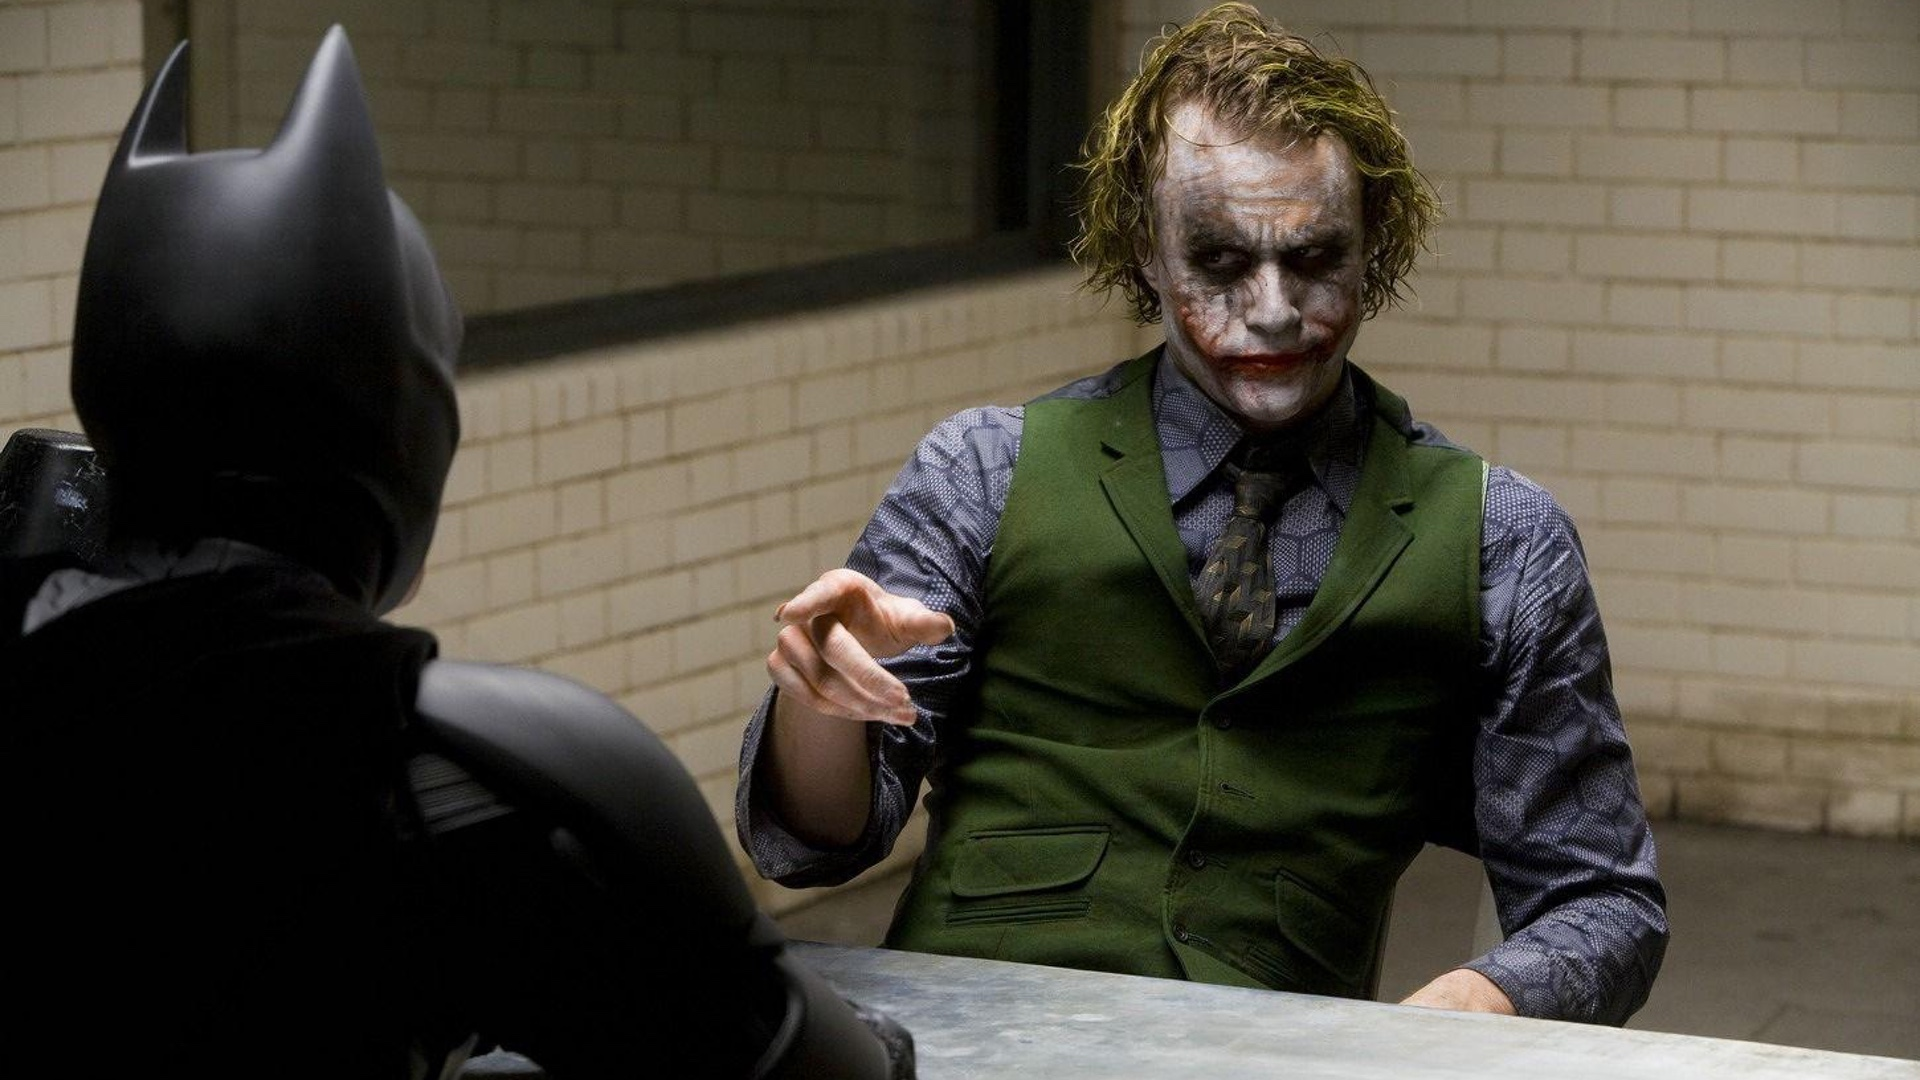 after christopher nolans the dark knight was released i remember having lots of discussions about the joker most of those discussions revolved around how